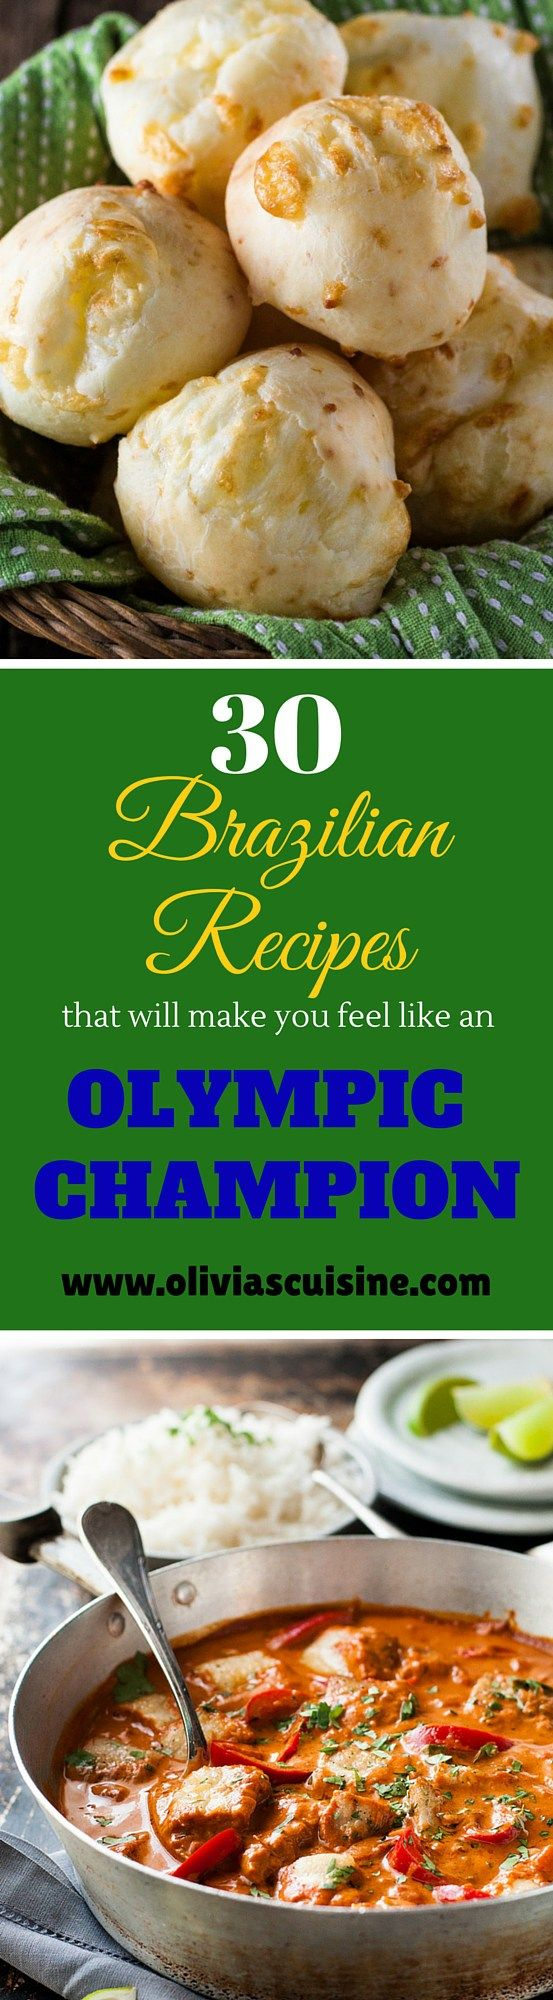 30 Authentic Brazilian Recipes That Will Make You Feel Like A Olympic Champion | www.oliviascuisine.com | The best of the best, these classic dishes of Brazilian cuisine will make you feel like you're in Rio!